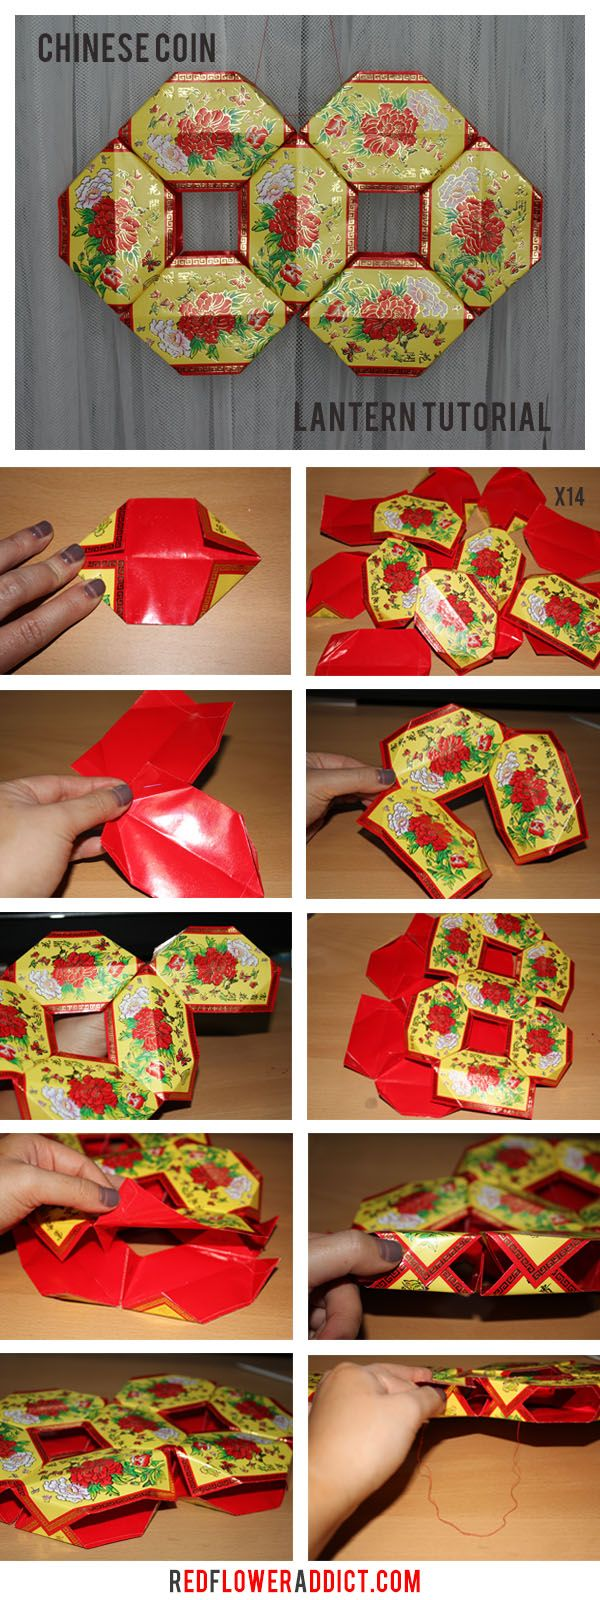 Chinese New Year Coin Lantern DIY Tutorial. Made of Red